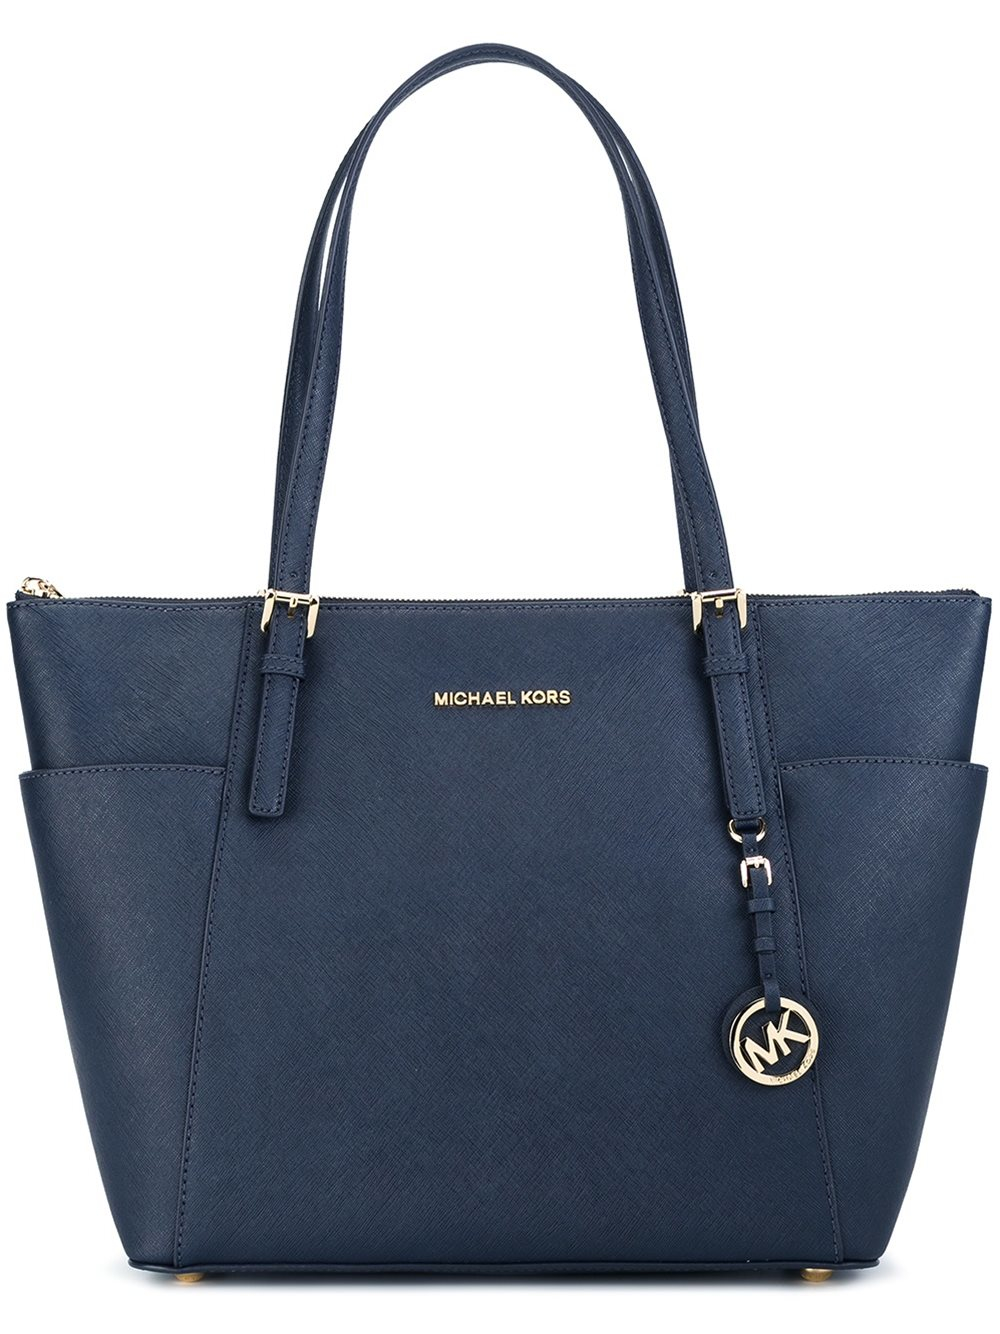 michael michael kors shopper tote in multicolor blue lyst. Black Bedroom Furniture Sets. Home Design Ideas